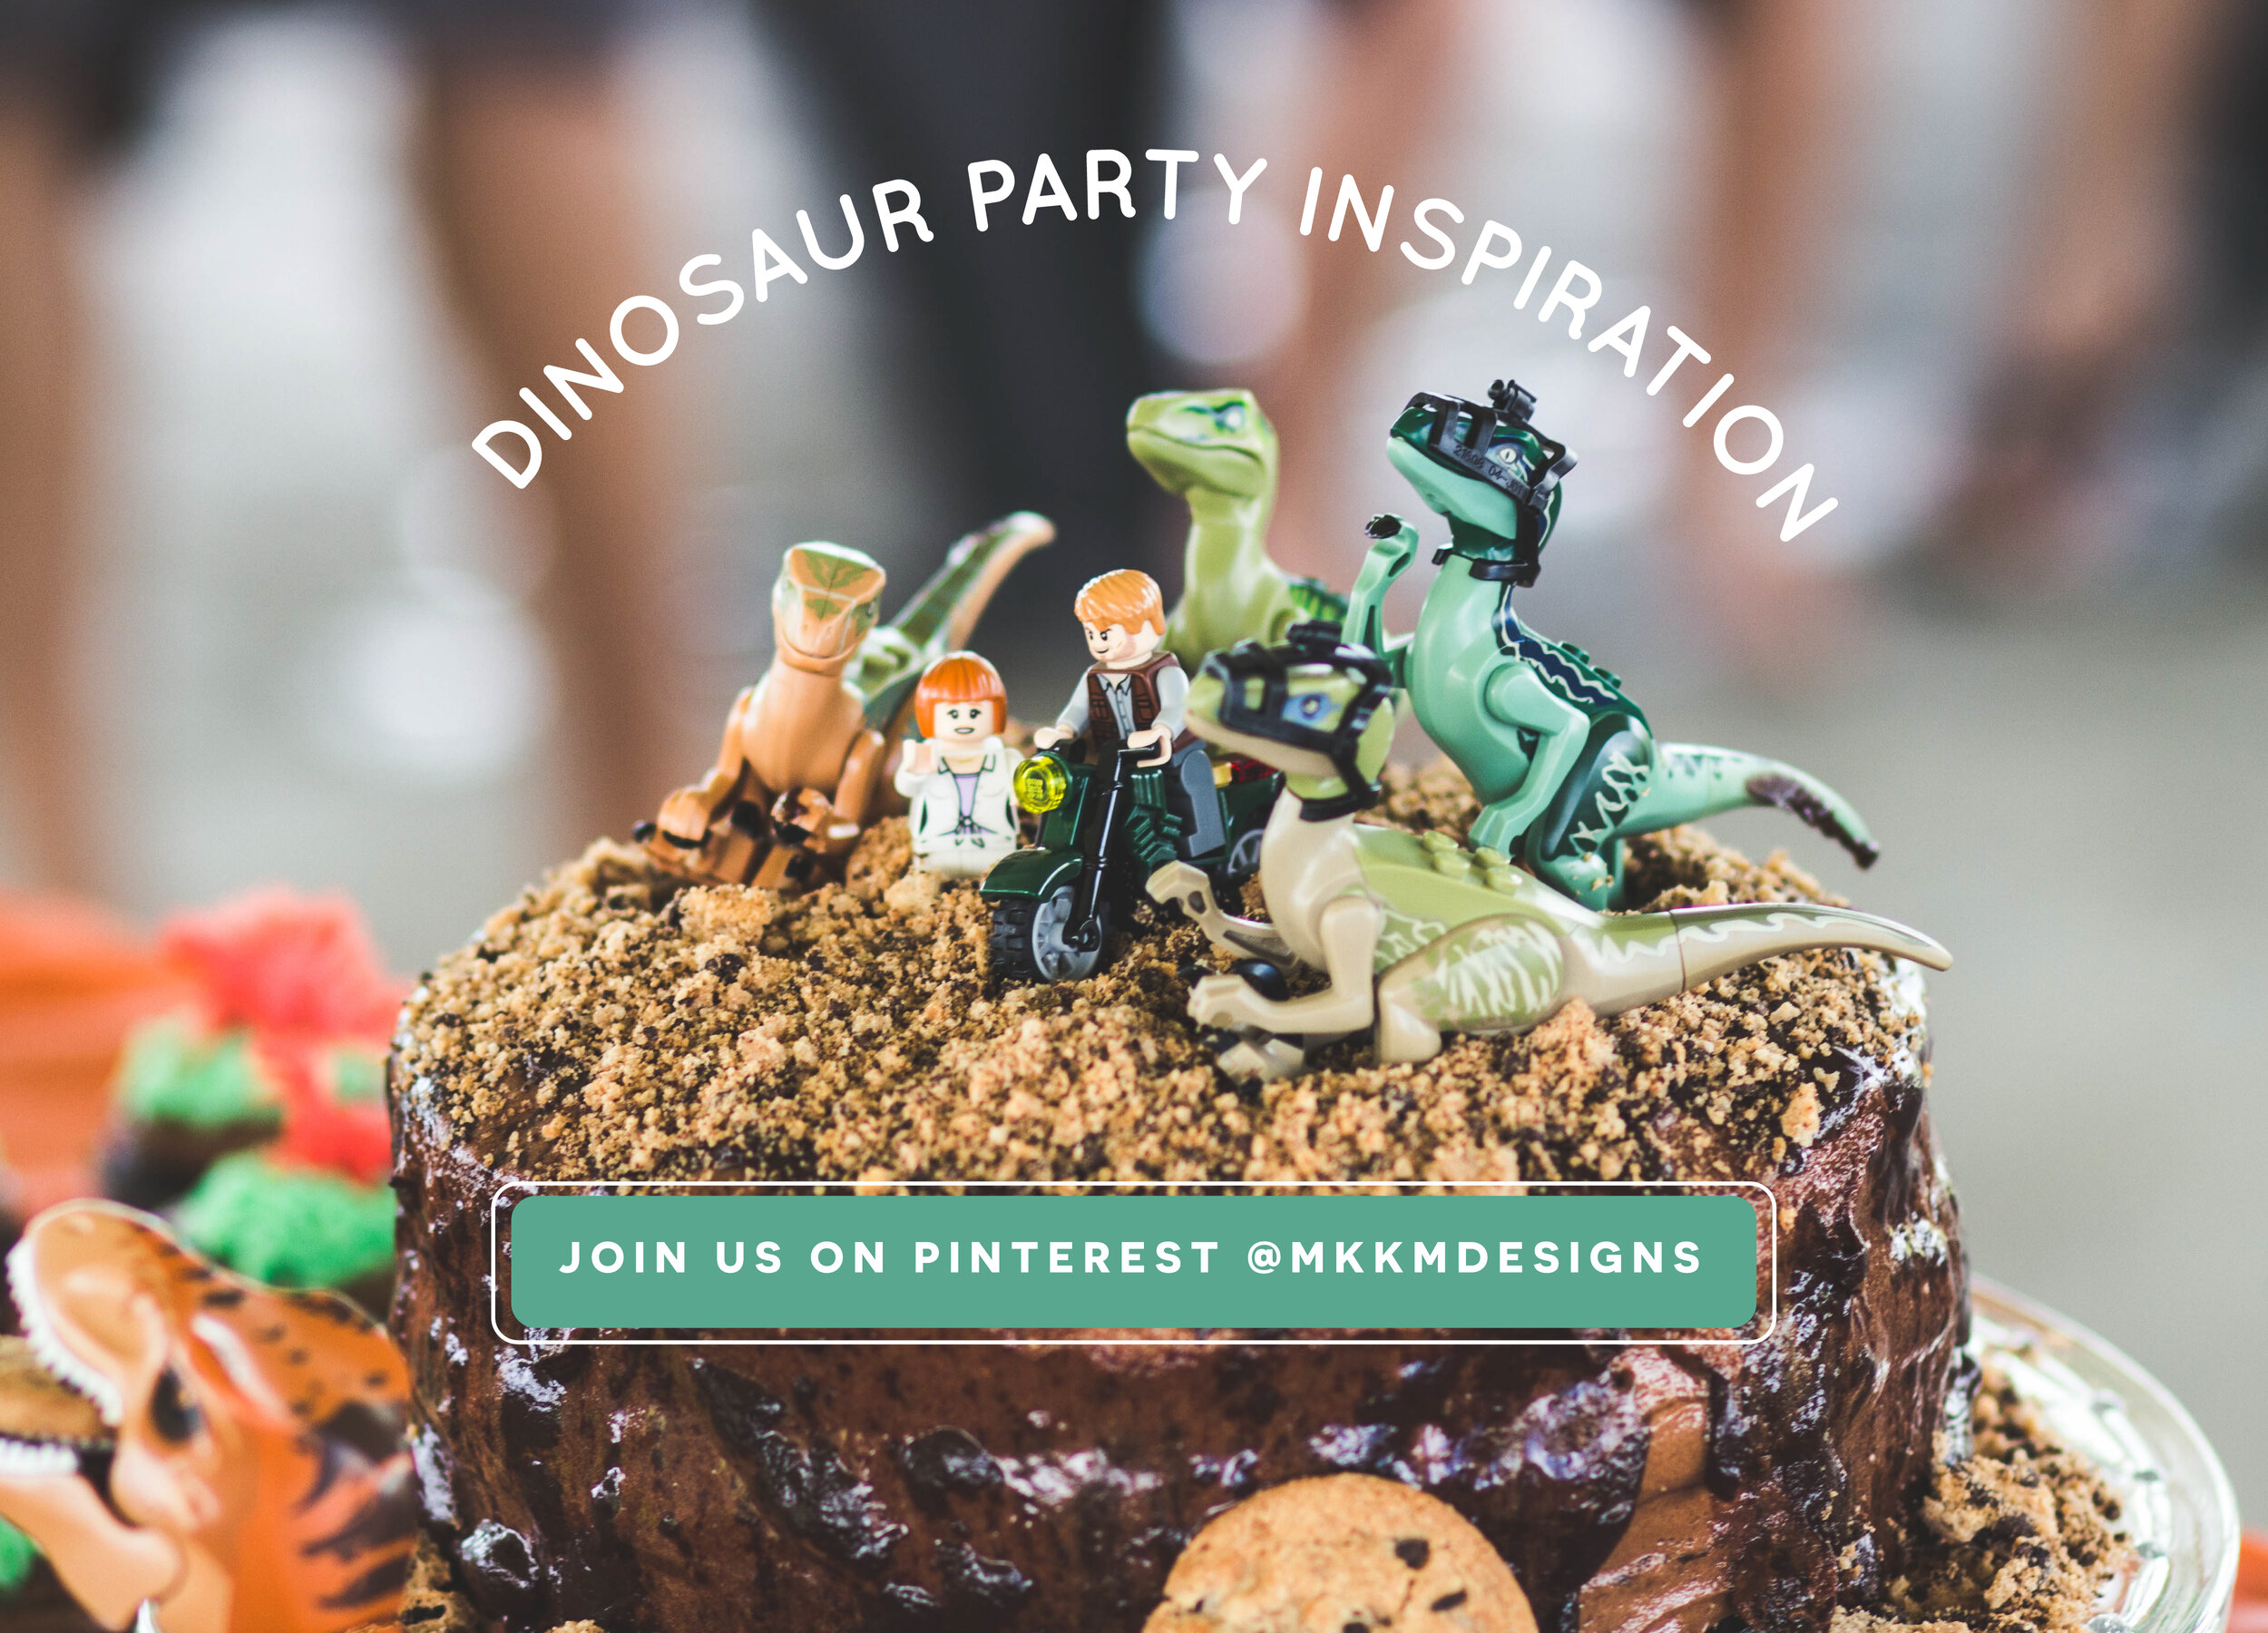 Follow us on Pinterest for more Dinosaur party ideas and more! pinterest.com/mkkmdesigns